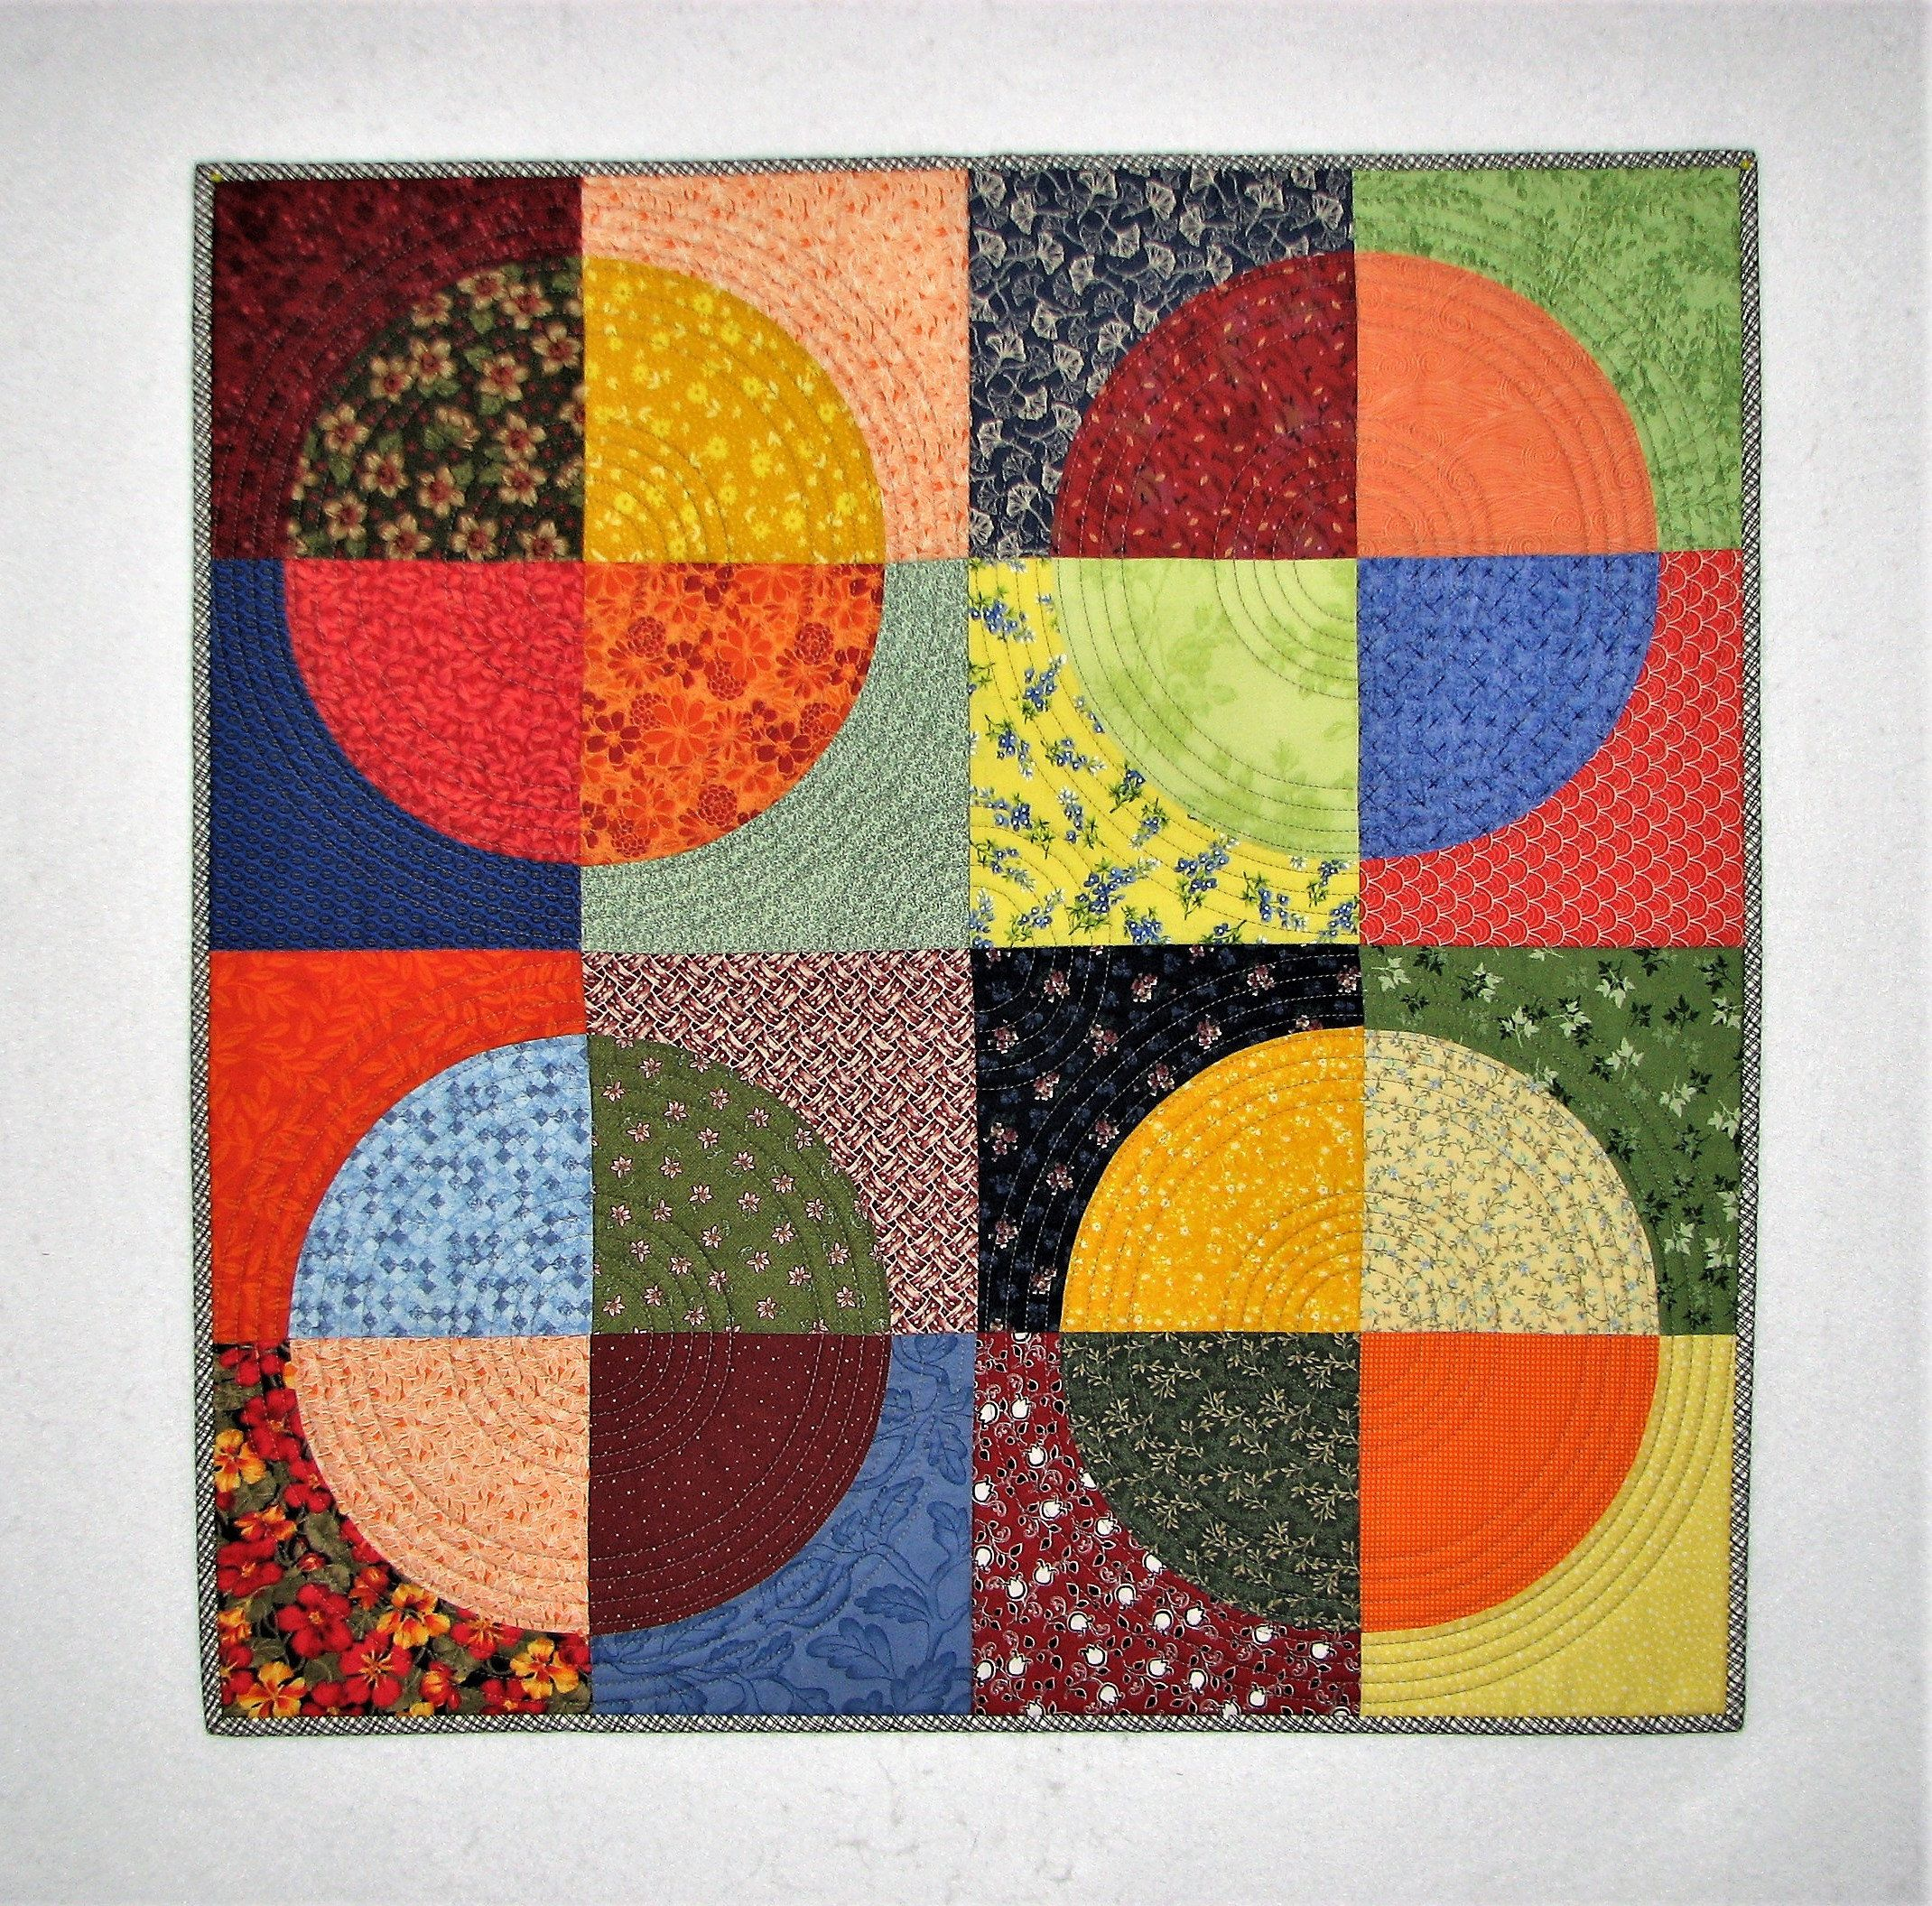 Modern Quilted Wall Hanging Boho Circles Art Quilt Handmade Multi Color Wall Quilt Drunkard S Path Quilt 27 75 X27 75 Wall Quilts Quilted Wall Hangings Art Quilts